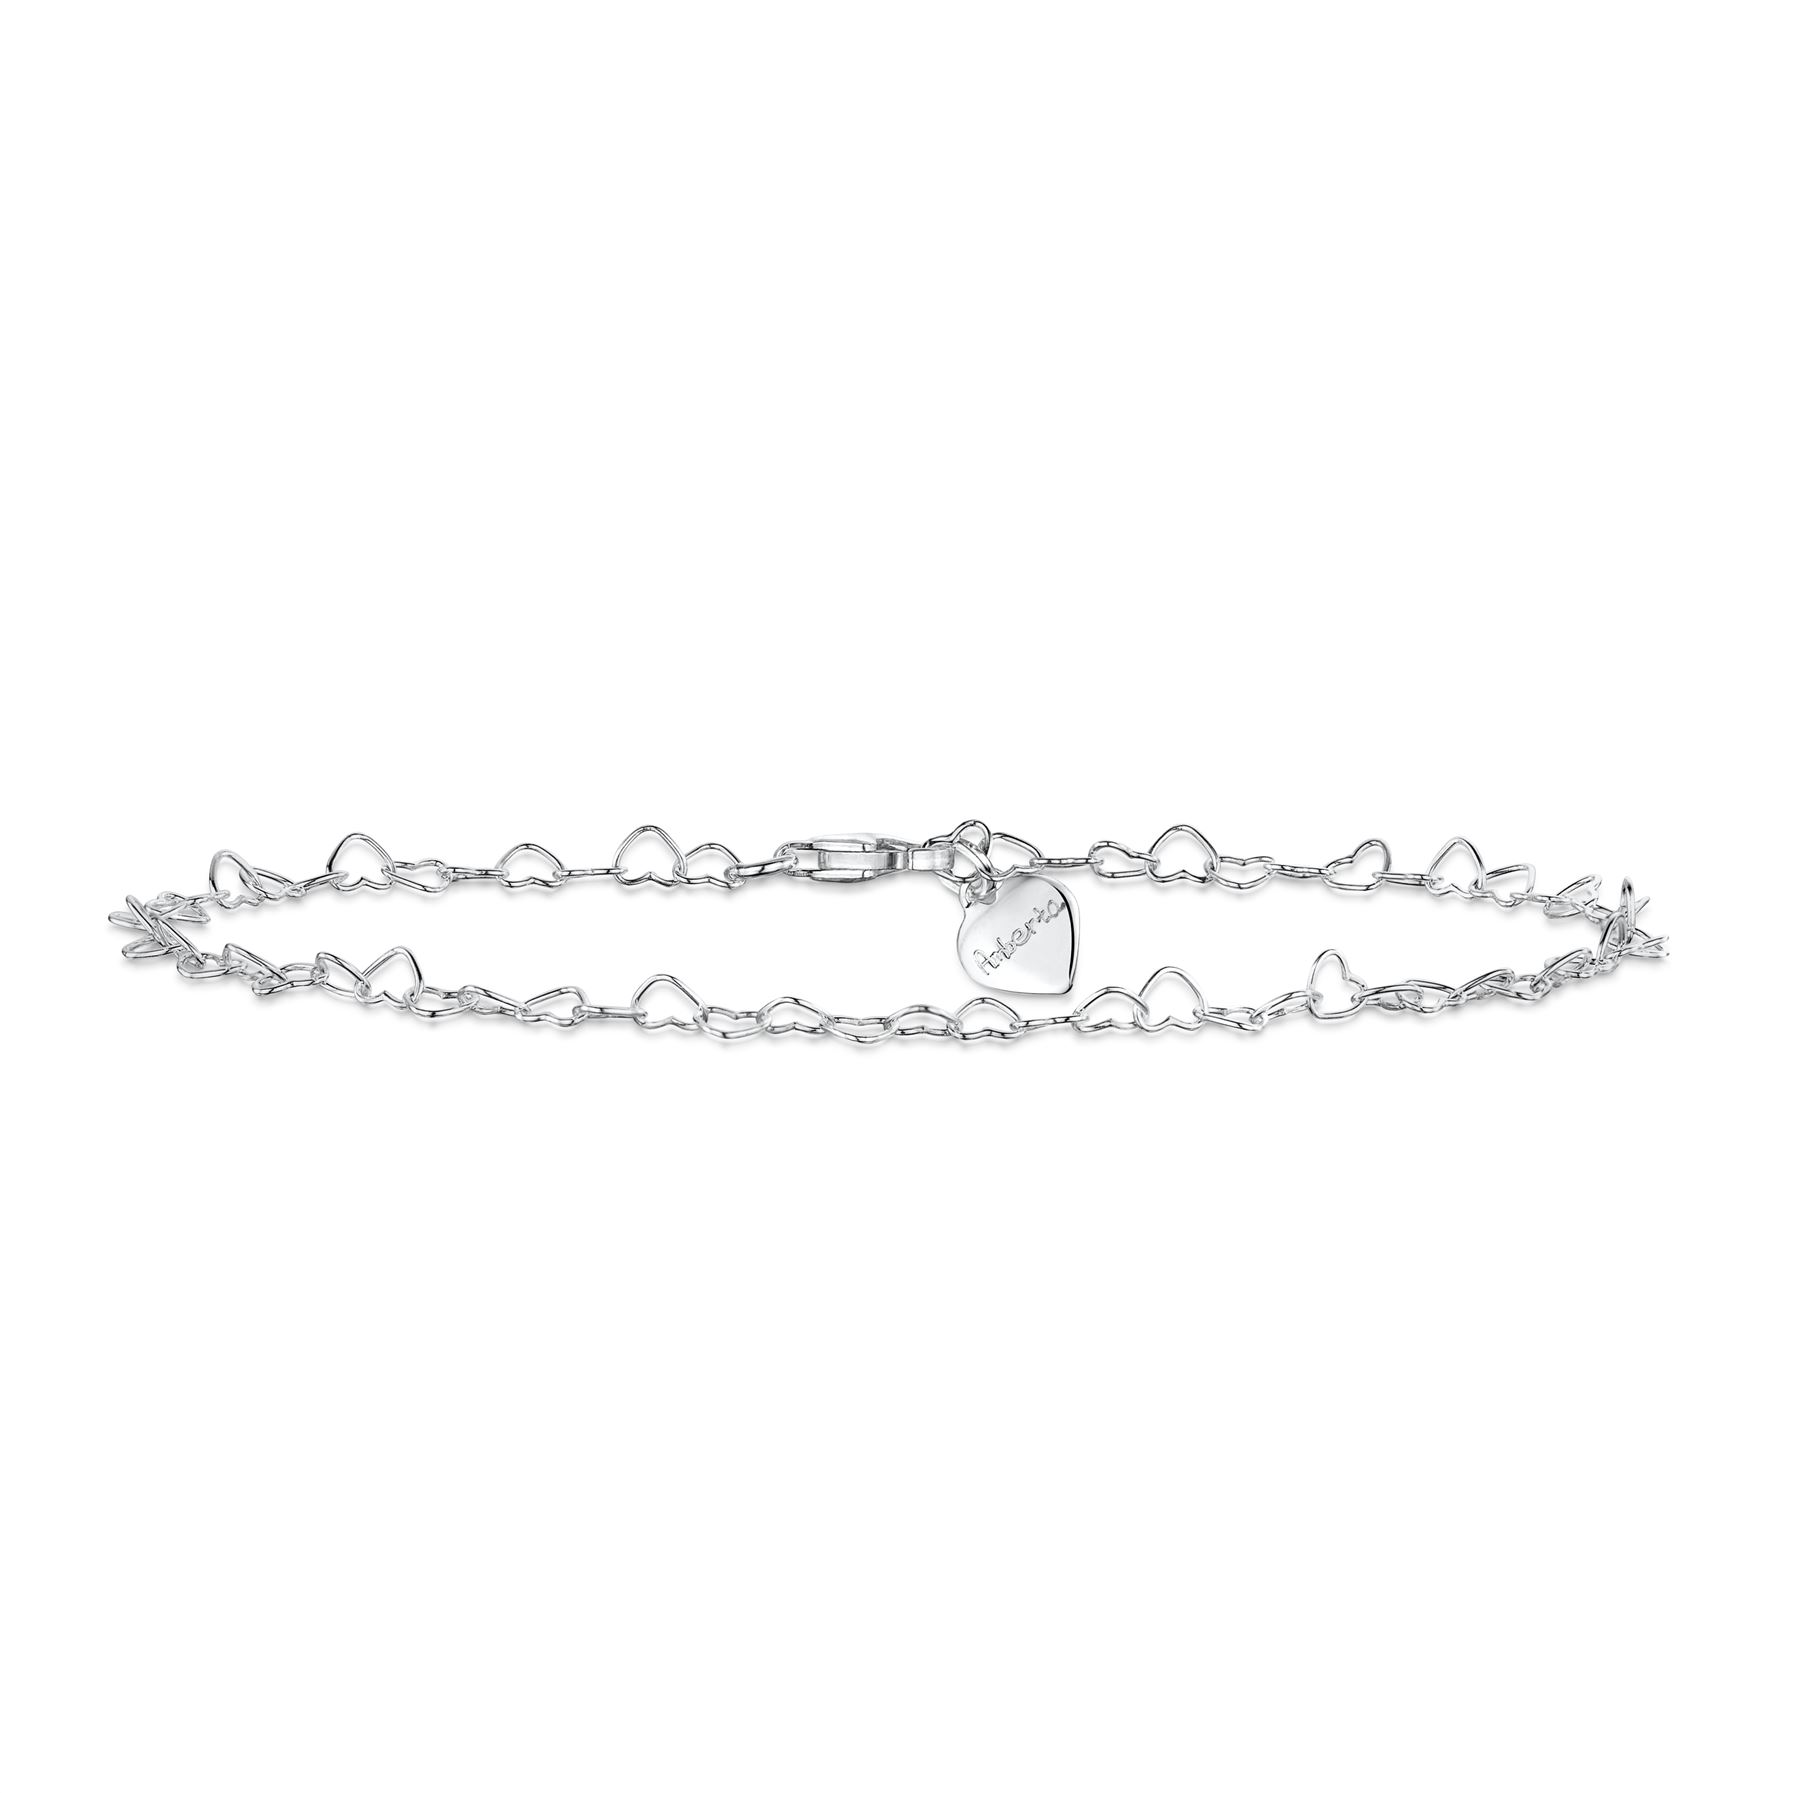 Amberta-Jewelry-Genuine-925-Sterling-Silver-Bracelet-Bangle-Chain-Made-in-Italy thumbnail 70